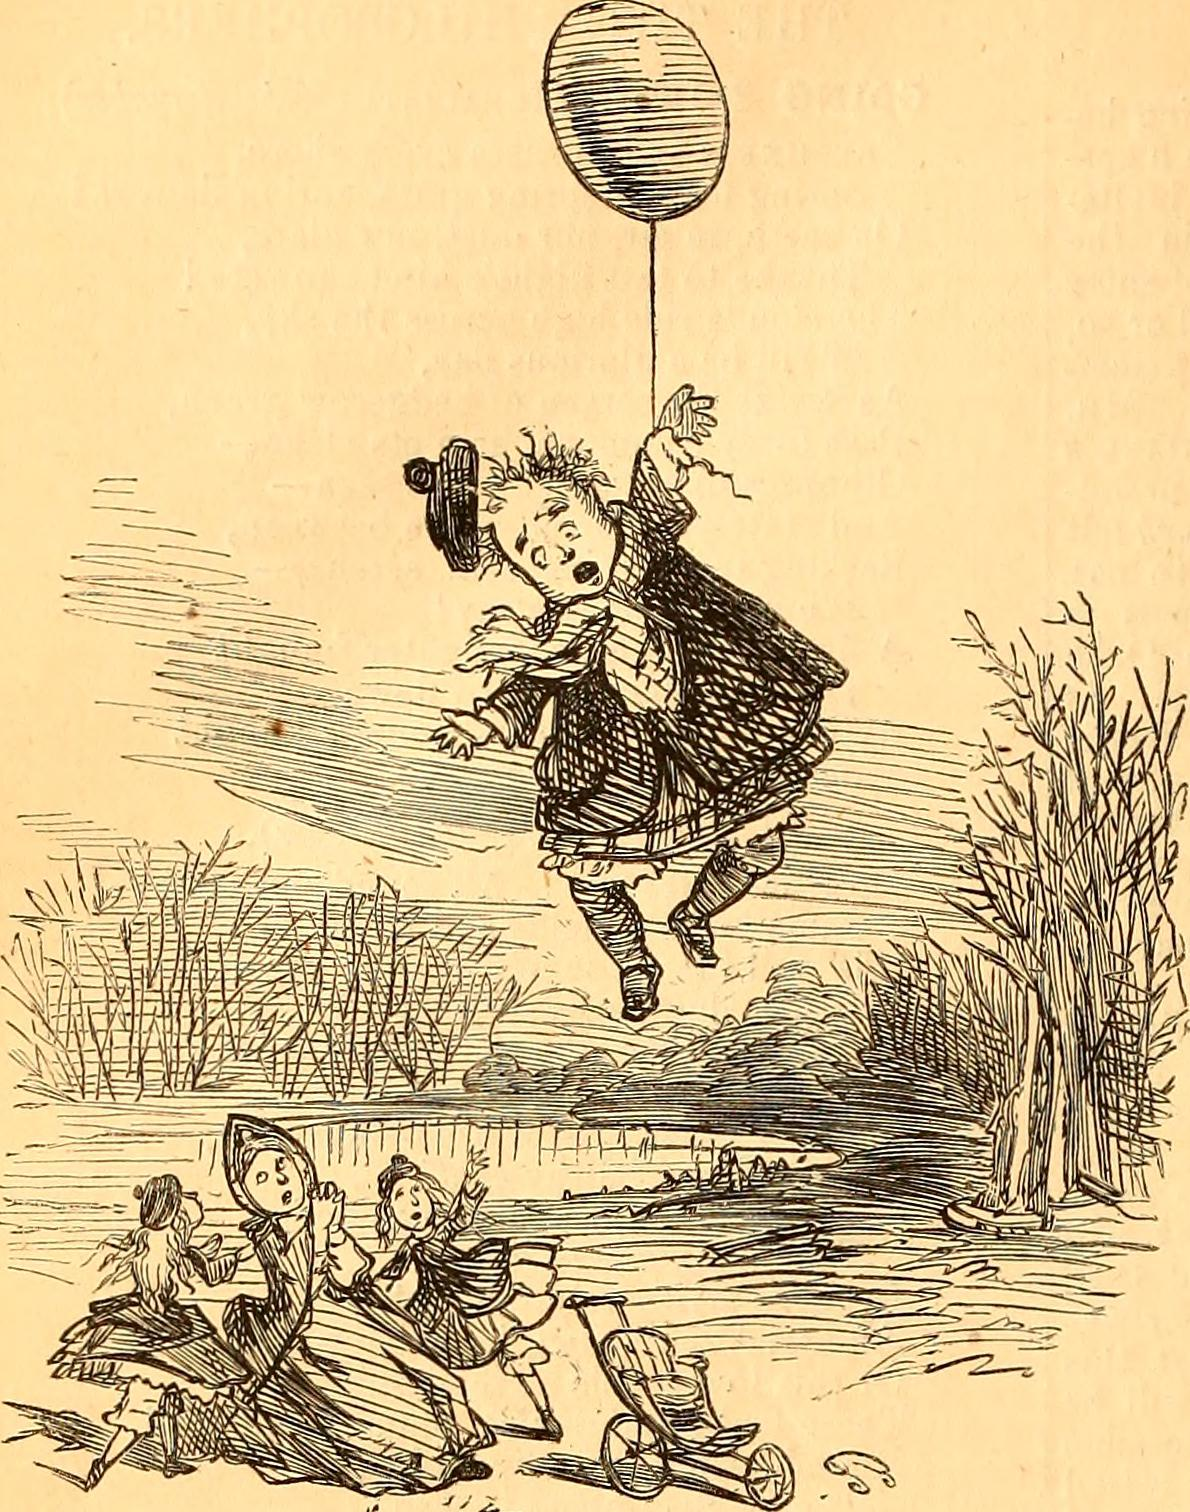 The many risks of balloonery. [From Punch in the Internet Archive Book Images](https://www.flickr.com/photos/internetarchivebookimages/14774404705/)